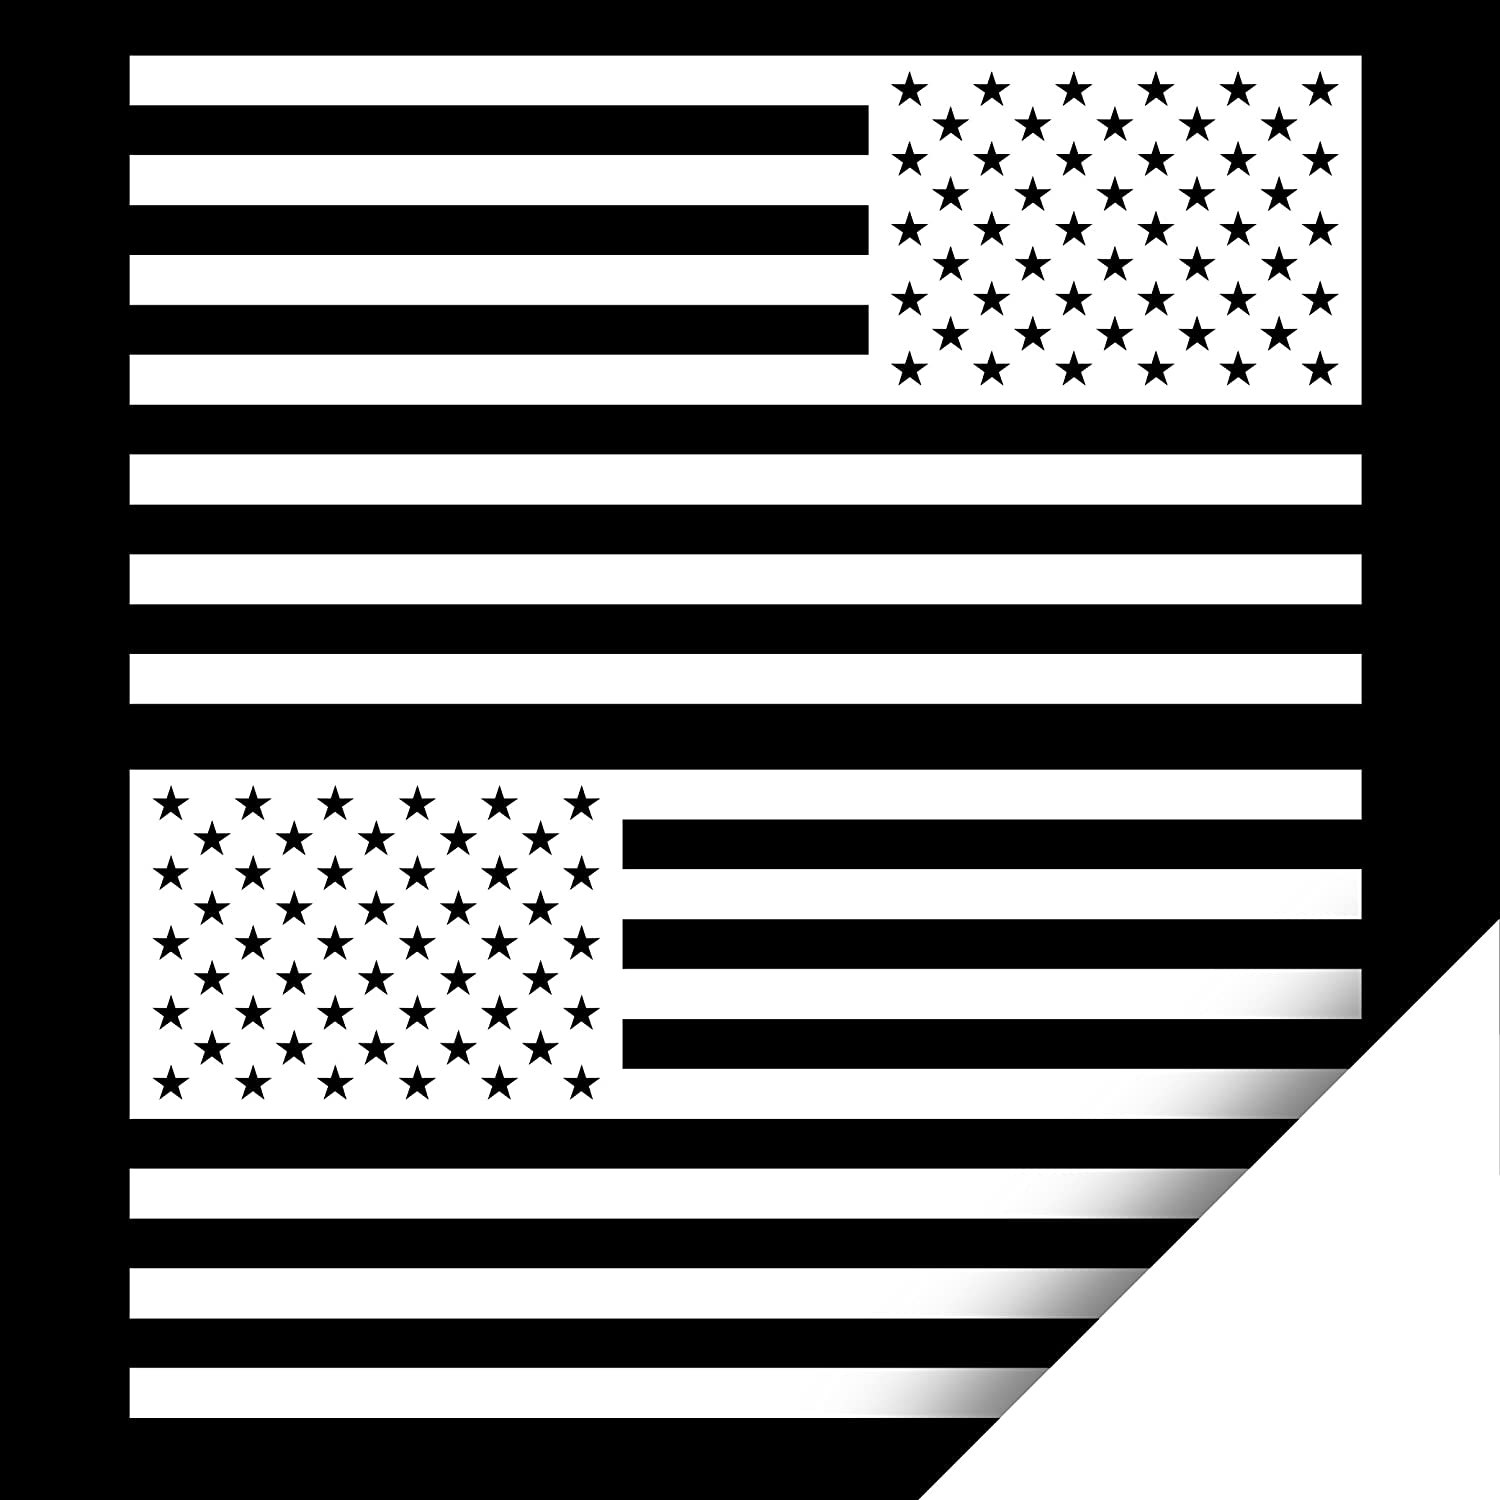 6 x 11.4 Yoonek Graphics Walls Motorcycle Black, 6 x 11.4 Laptop Mirror and More # 559 American Flag United States Decal Sticker for Car Window